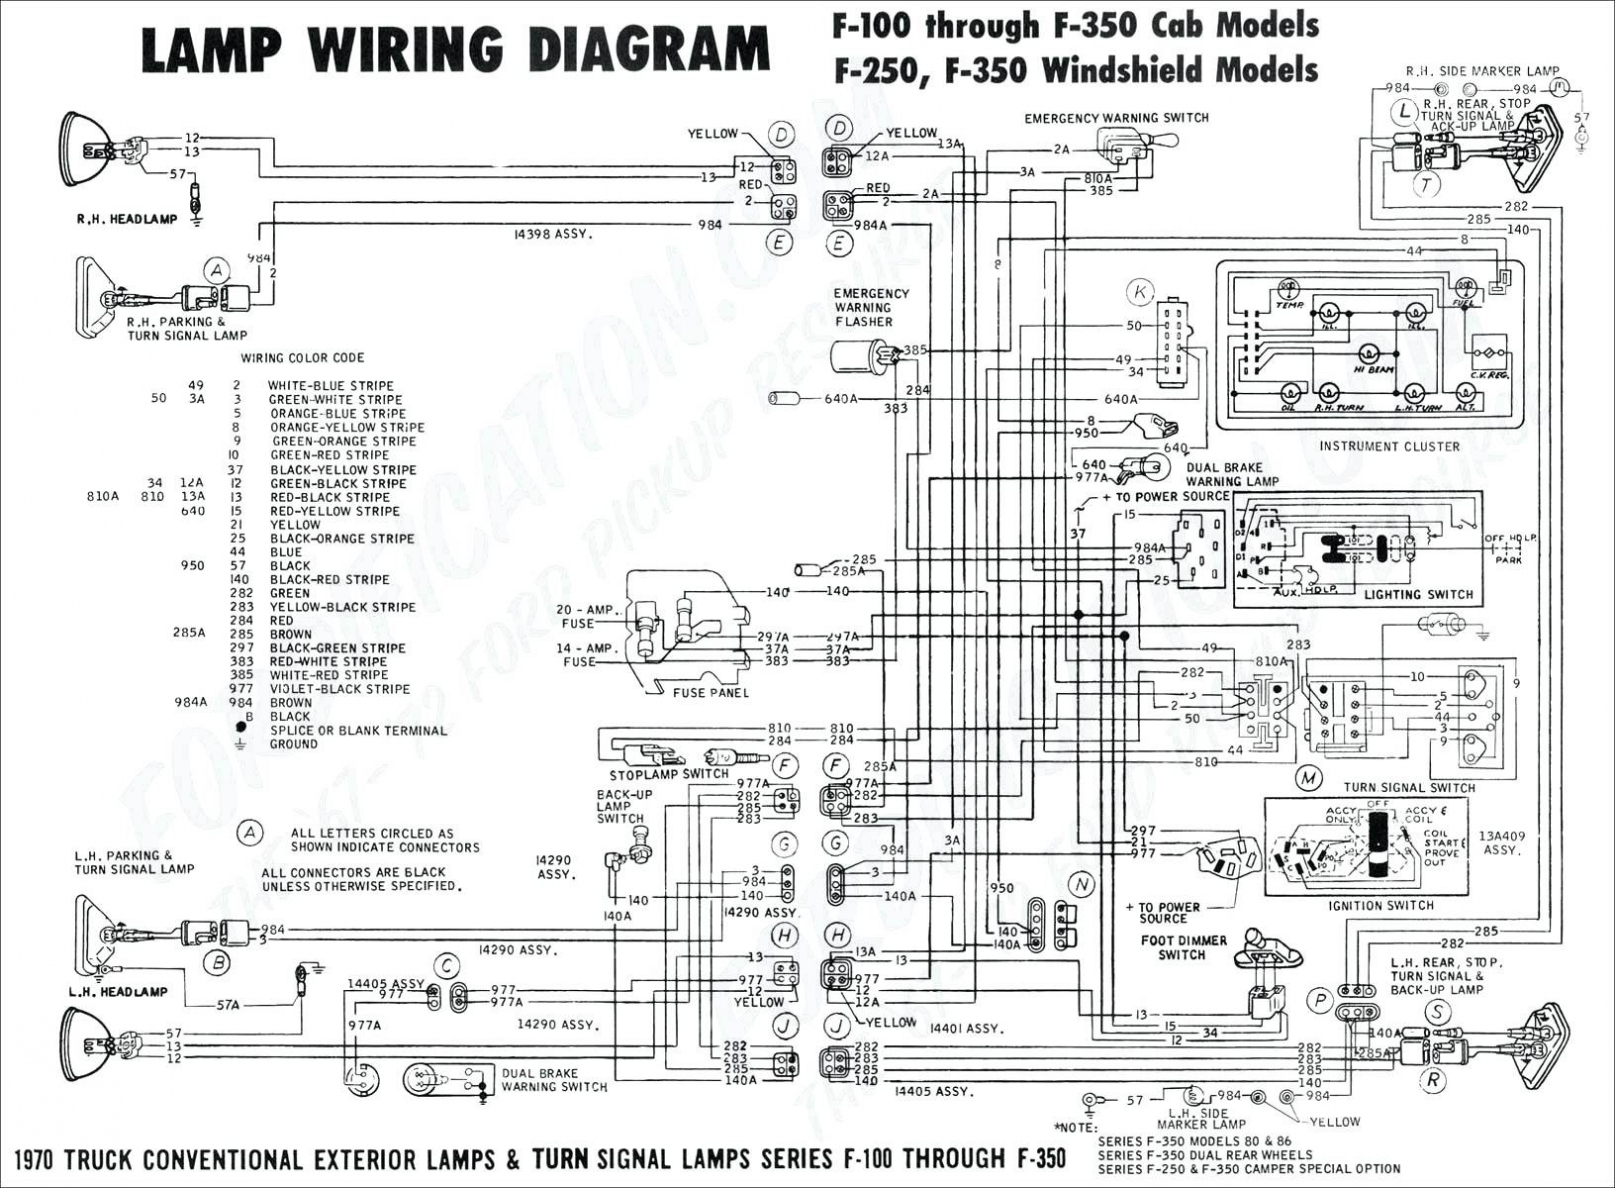 Ccc Wiring Diagram | Wiring Schematic Diagram - 72.glamfizz.de on